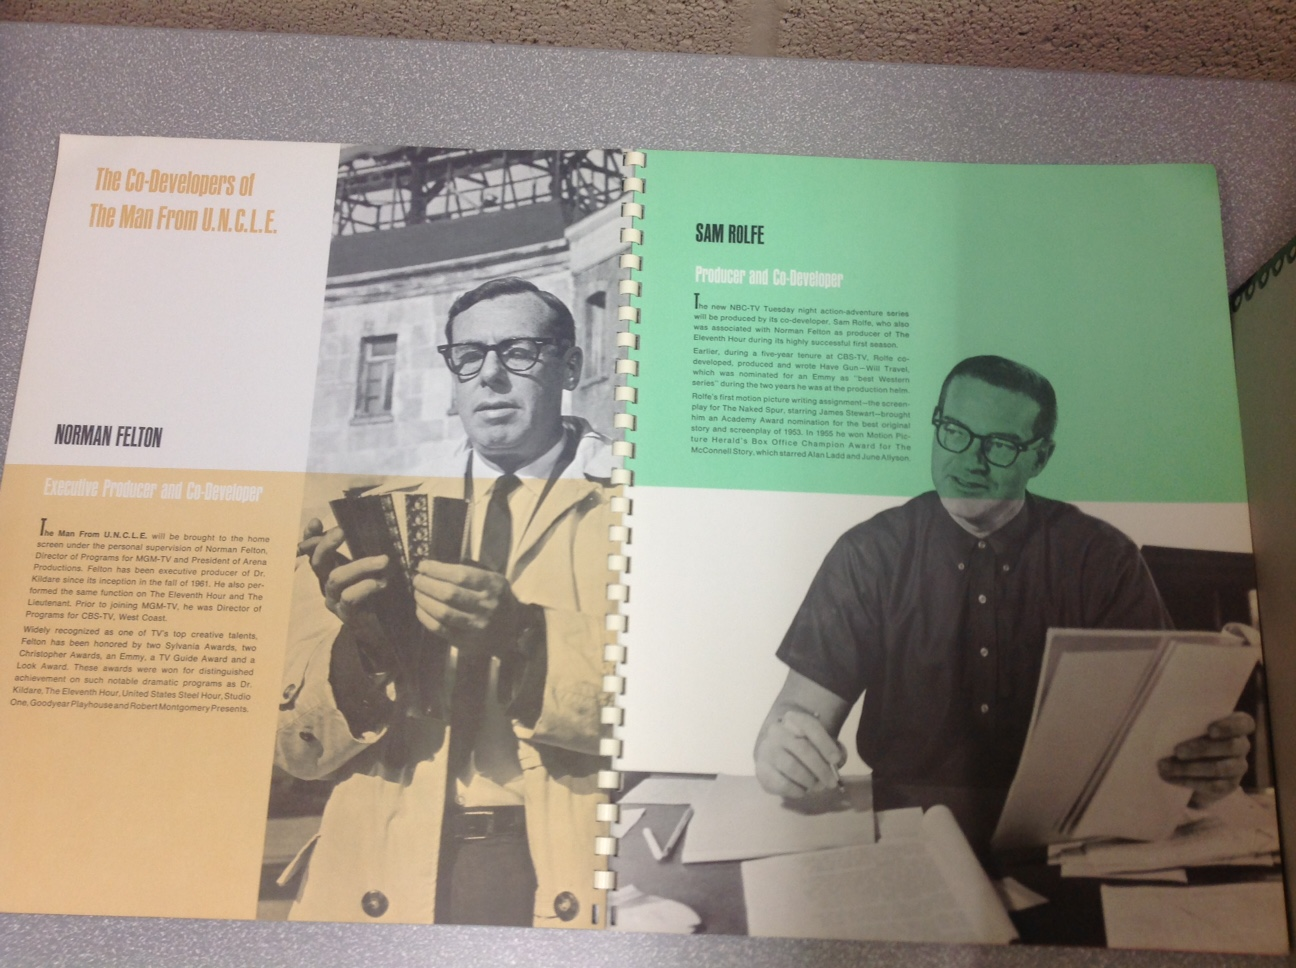 Producer Norman Felton profiled in the booklet.